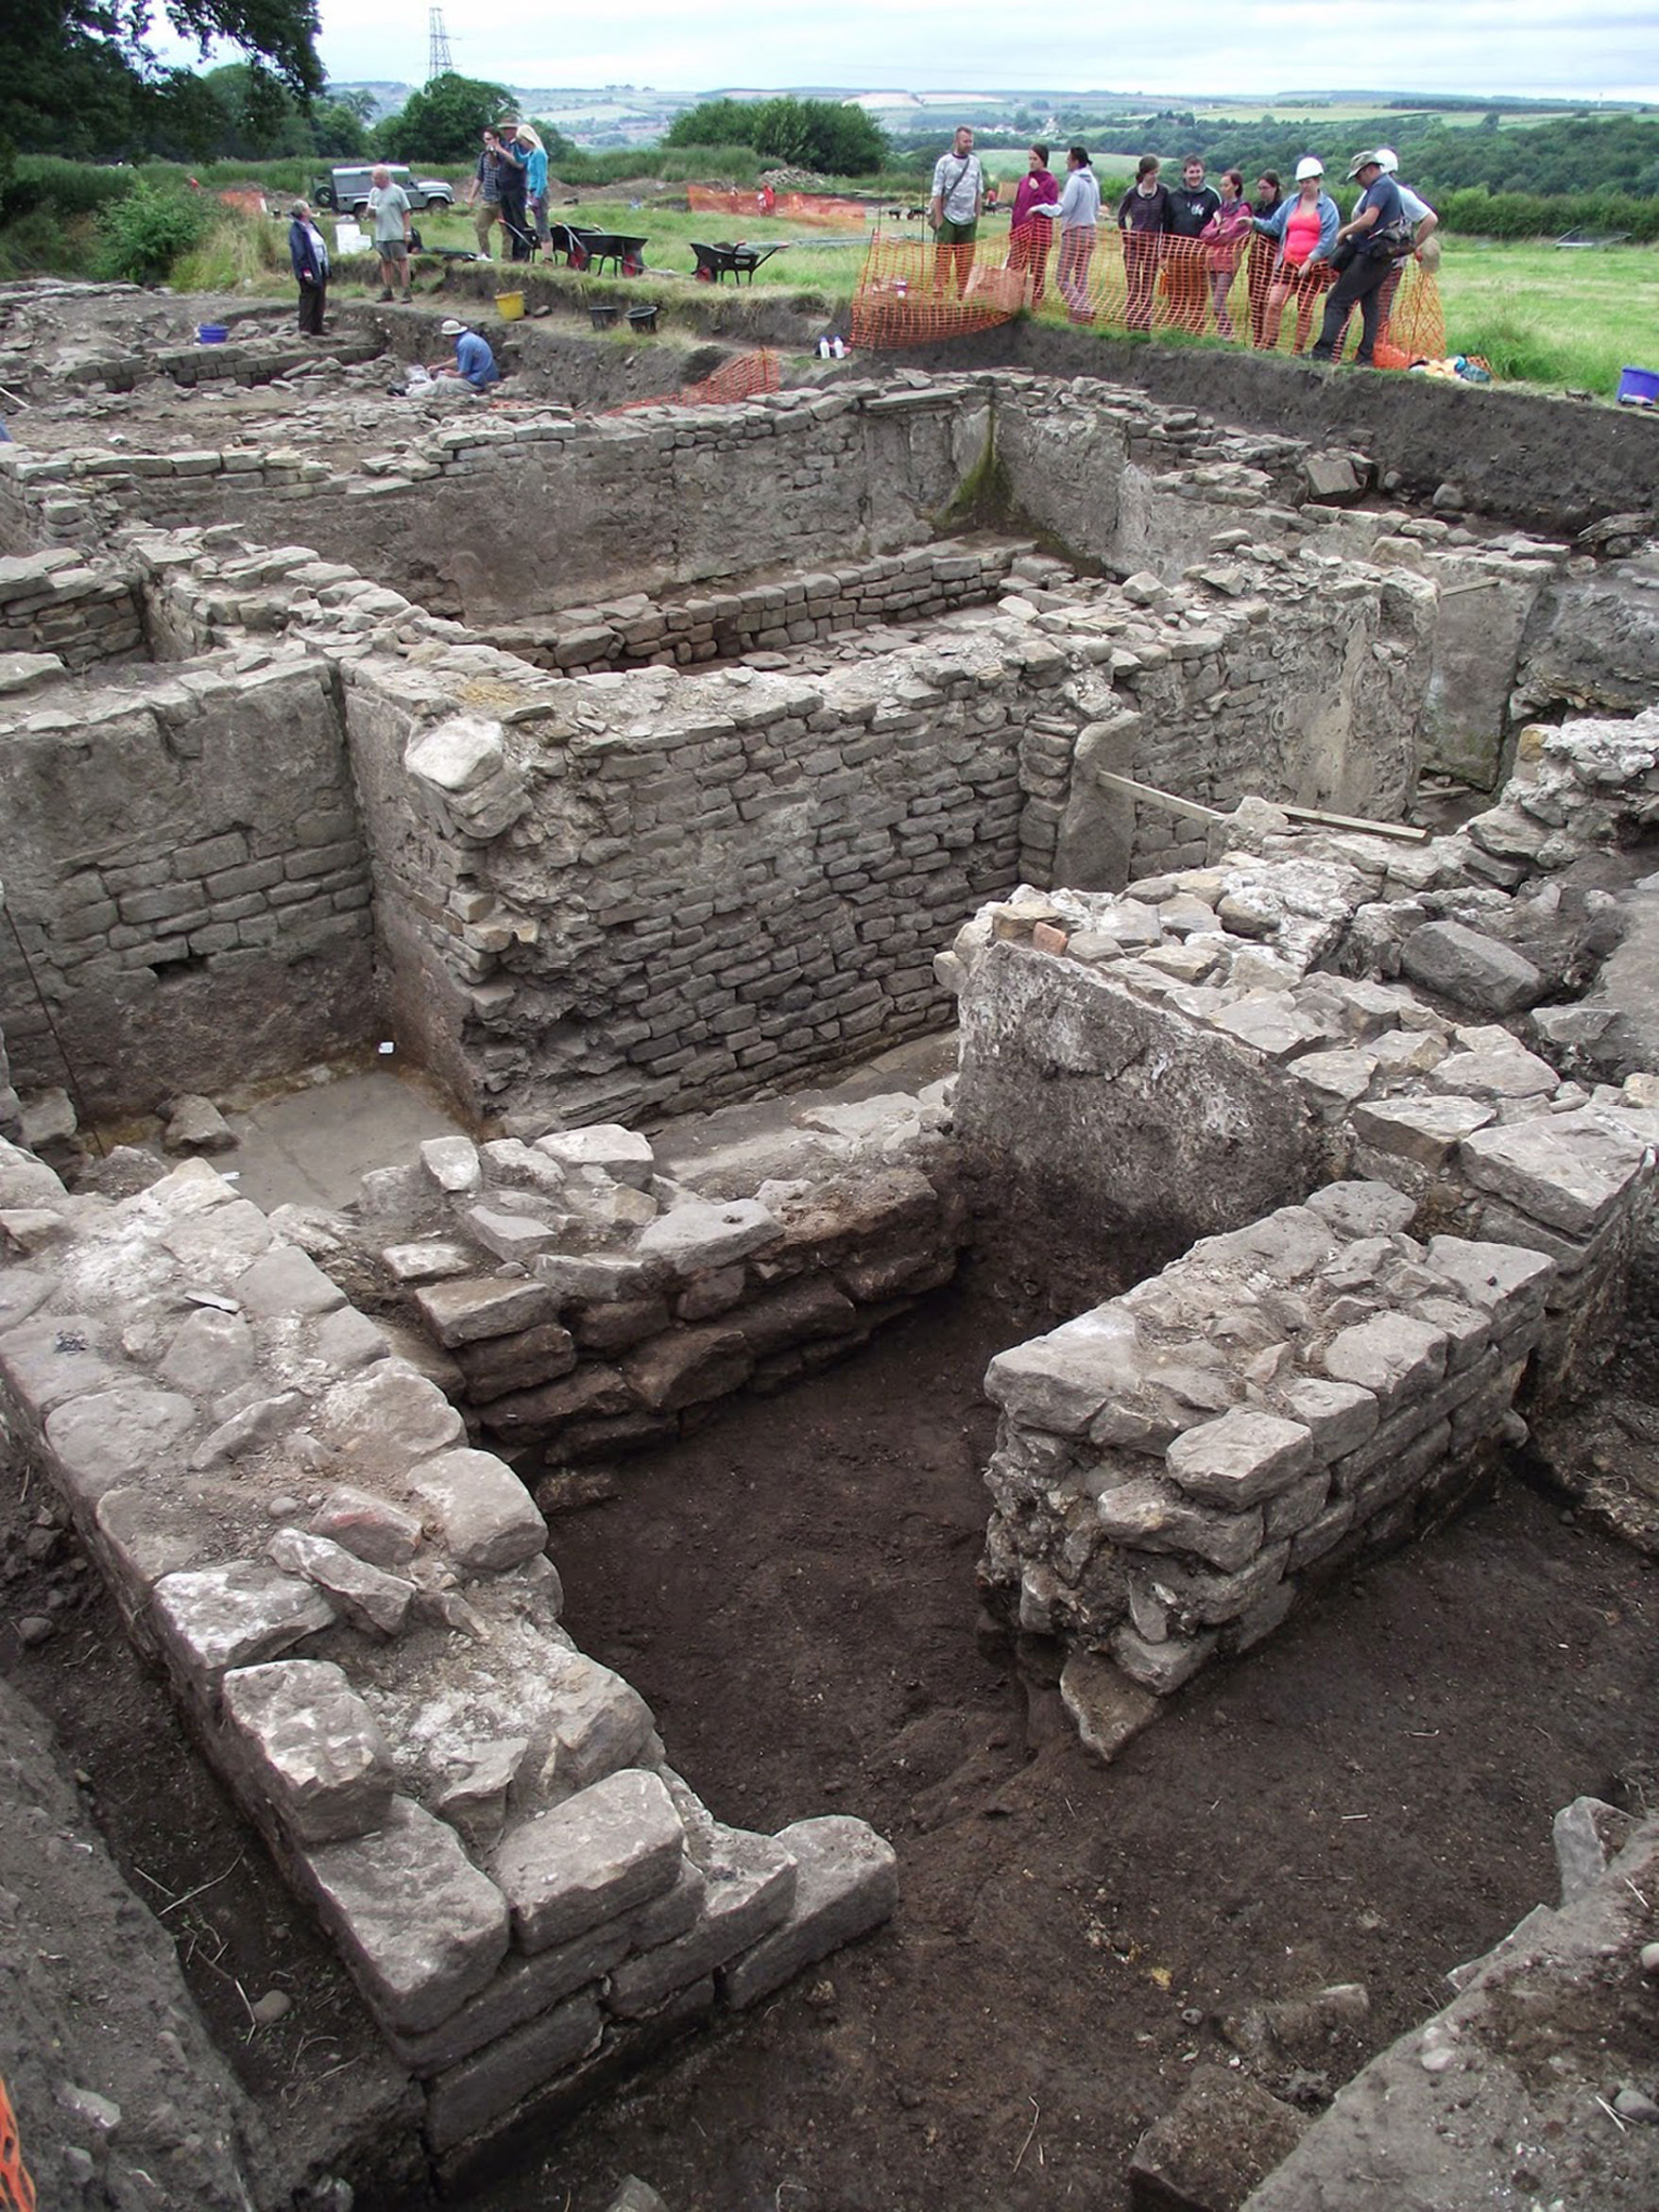 £2m bid fails to secure Binchester Roman Fort